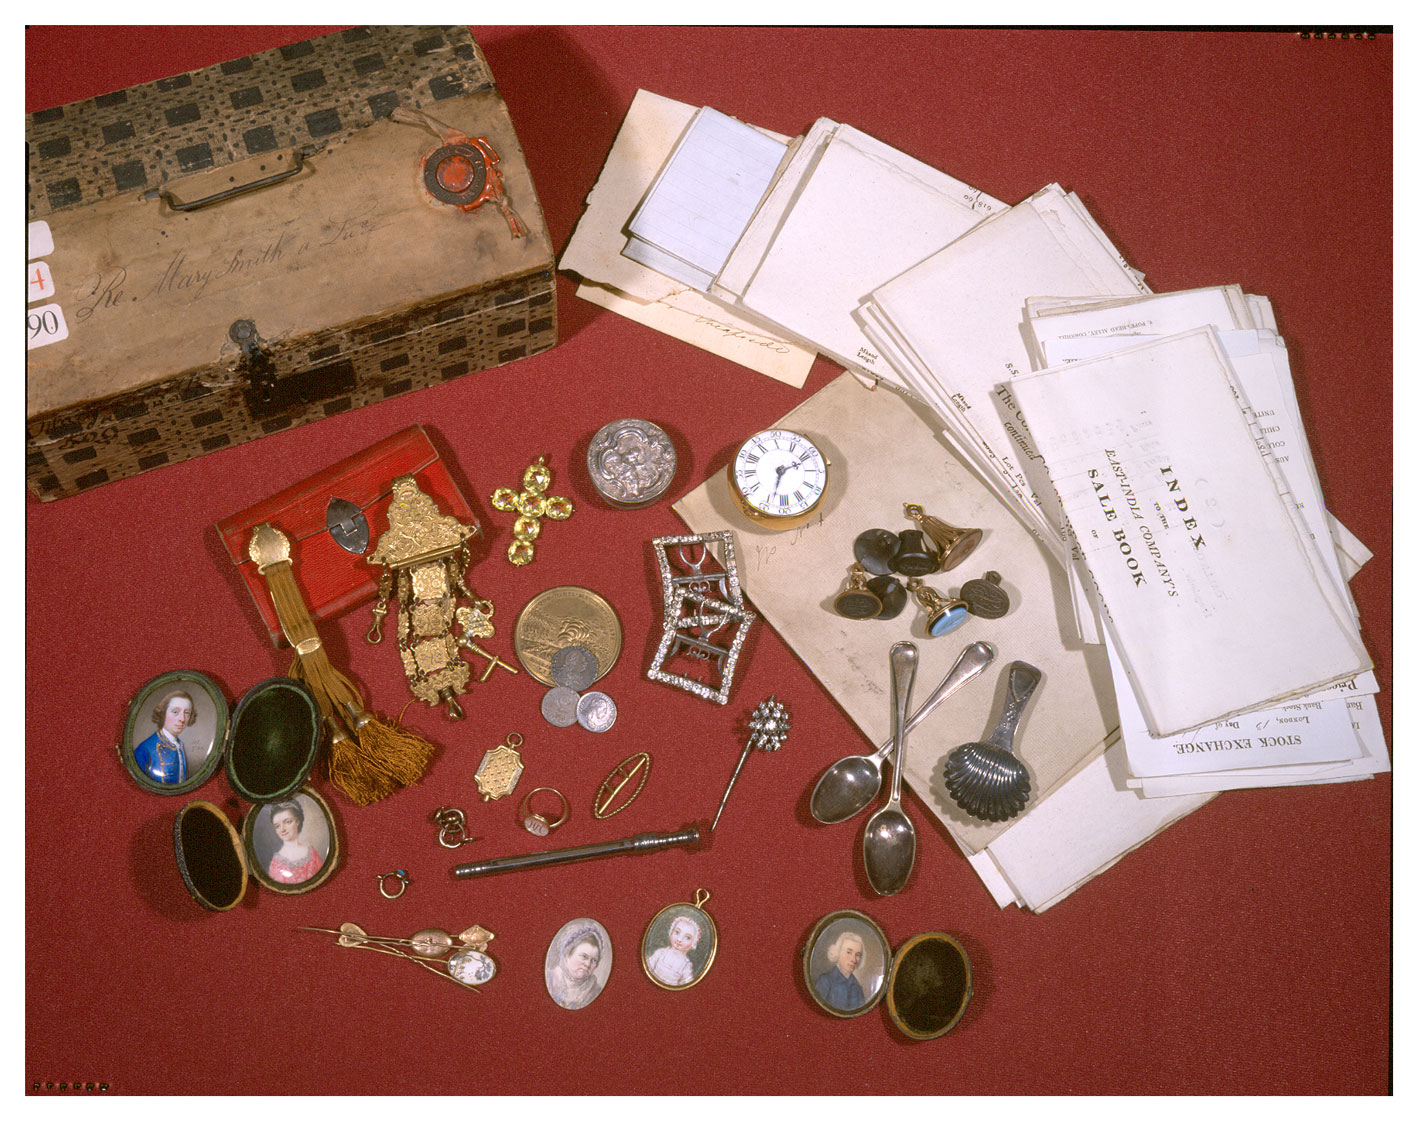 These items belonged to Mary Smith who lived at Christ's Hospital in London and died in 1810 (C 114/190)